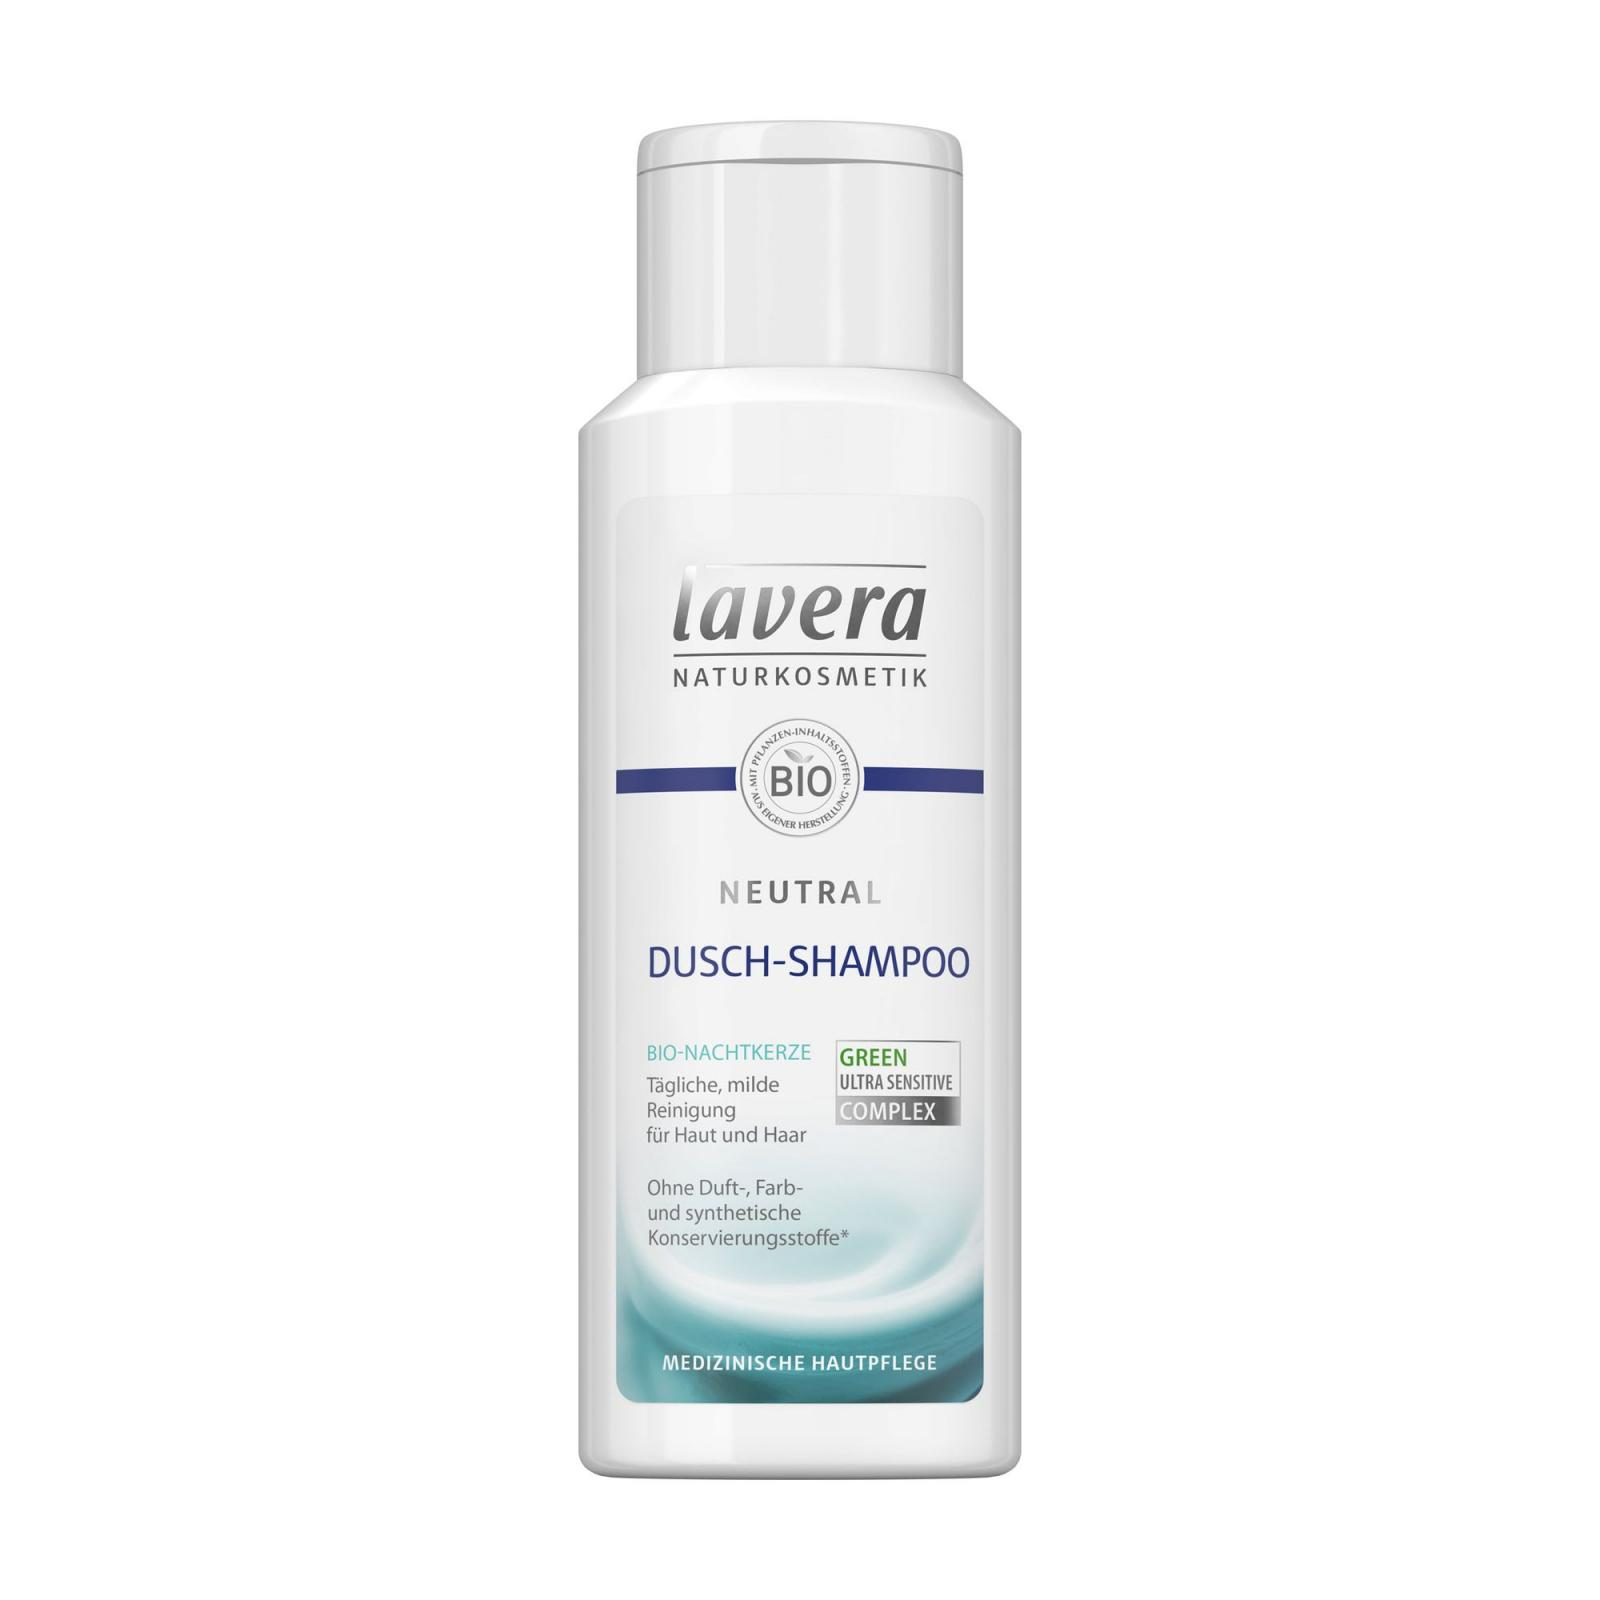 Lavera Sprchový šampon, Neutral 200 ml